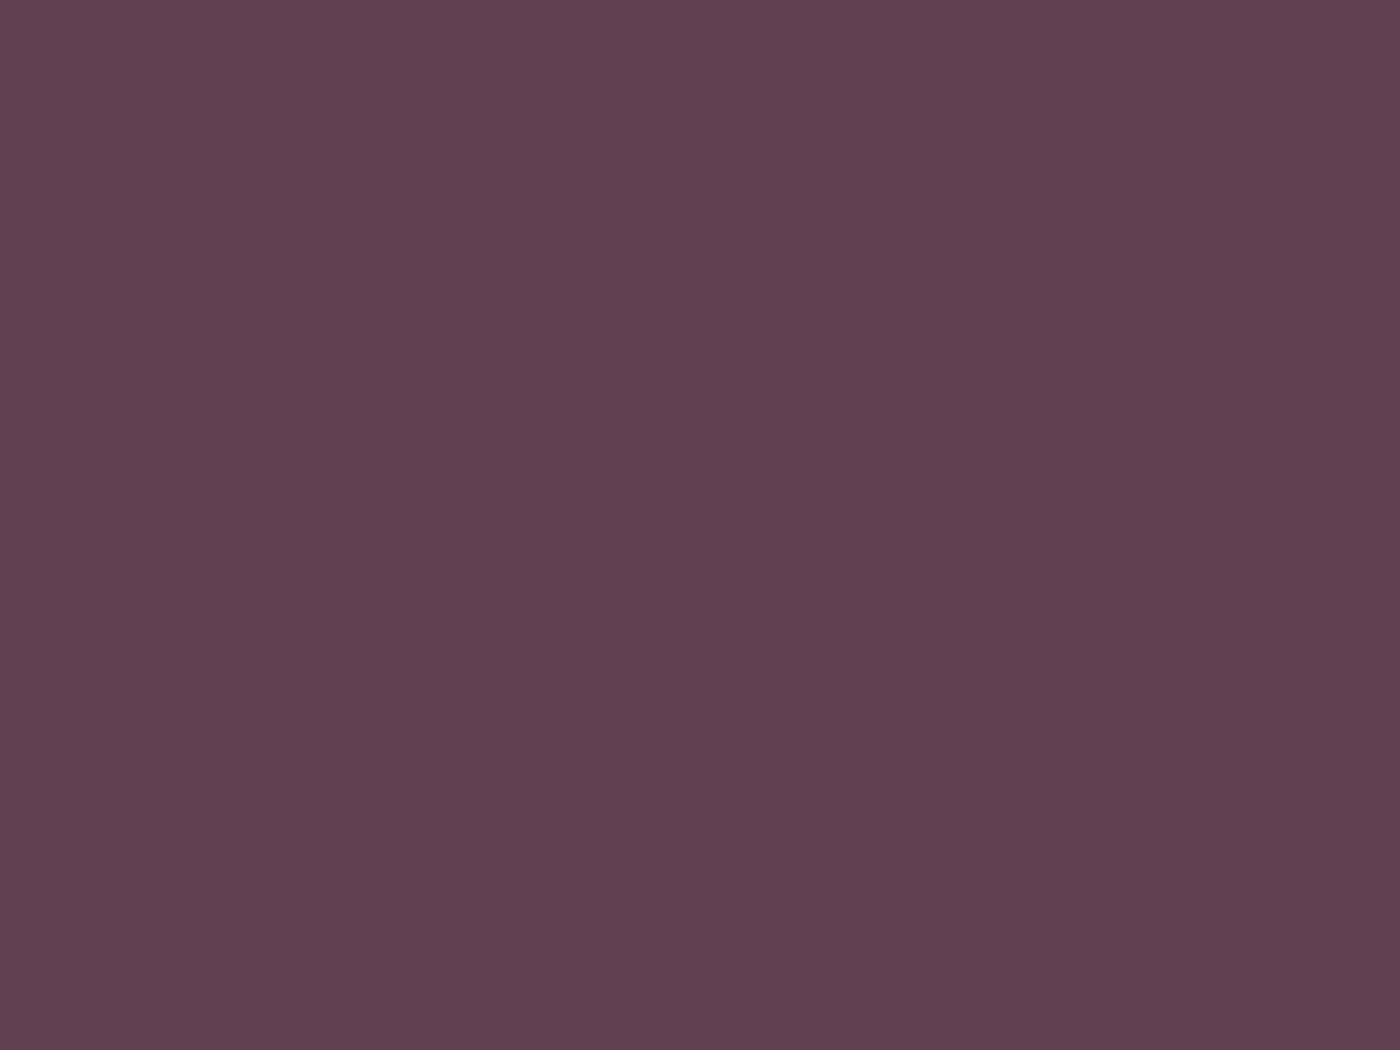 1400x1050 Eggplant Solid Color Background